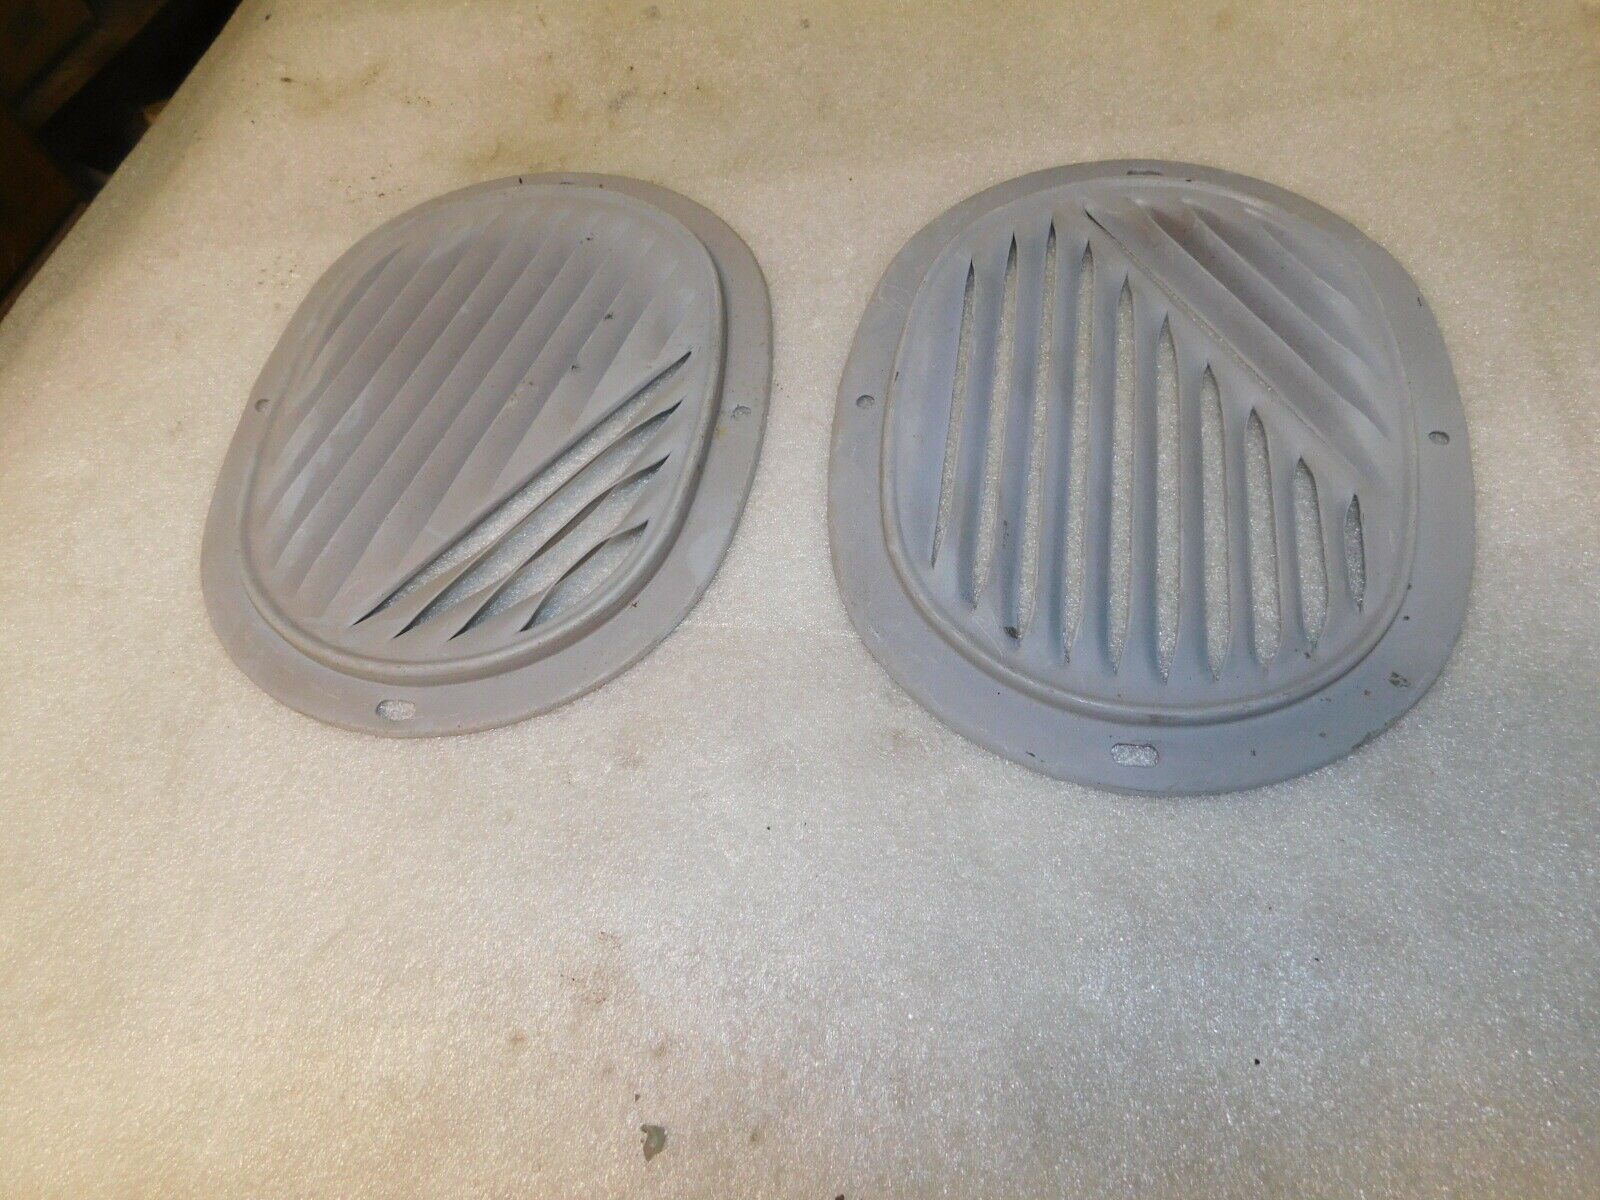 1958-1963 Chevy kick panel vent covers